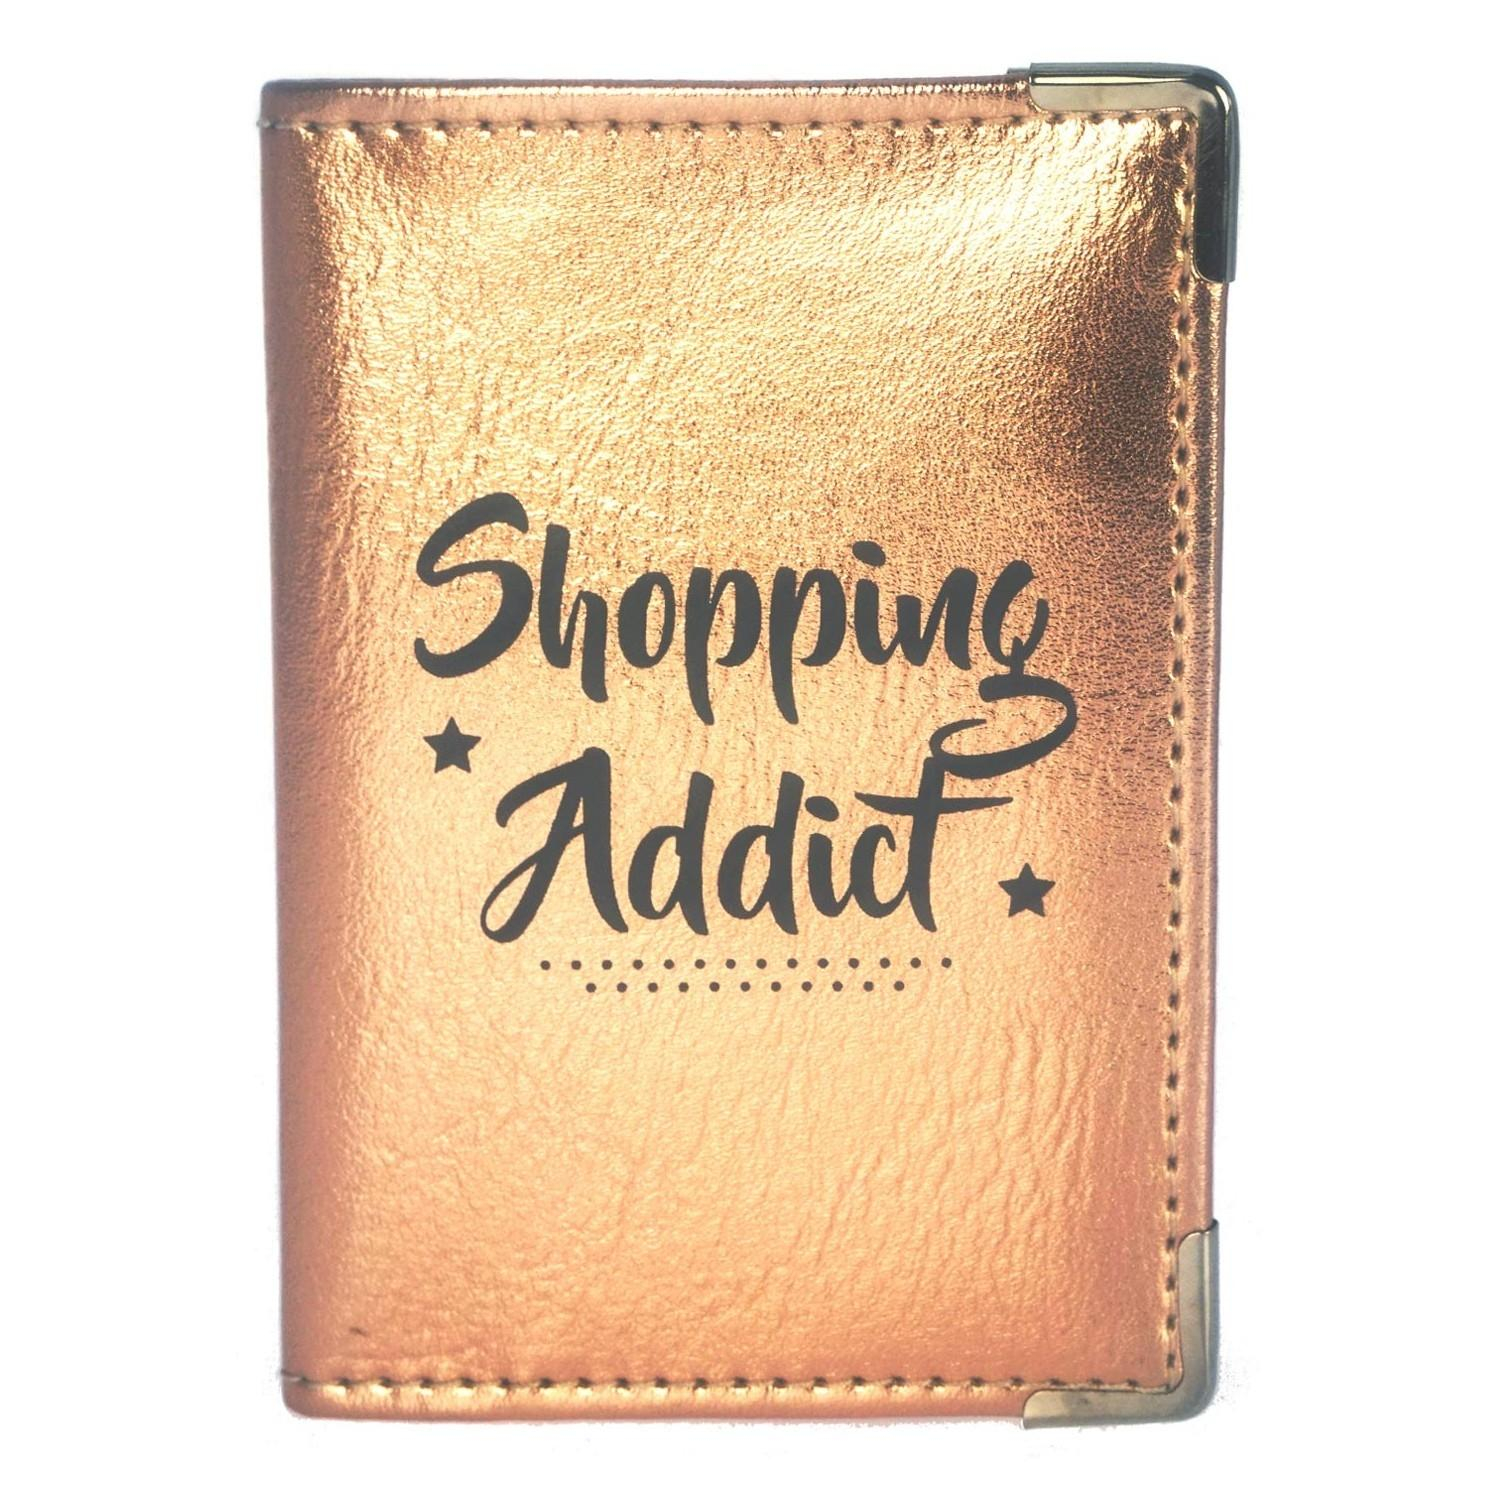 Etui Porte-Cartes Texte - Shopping Addict